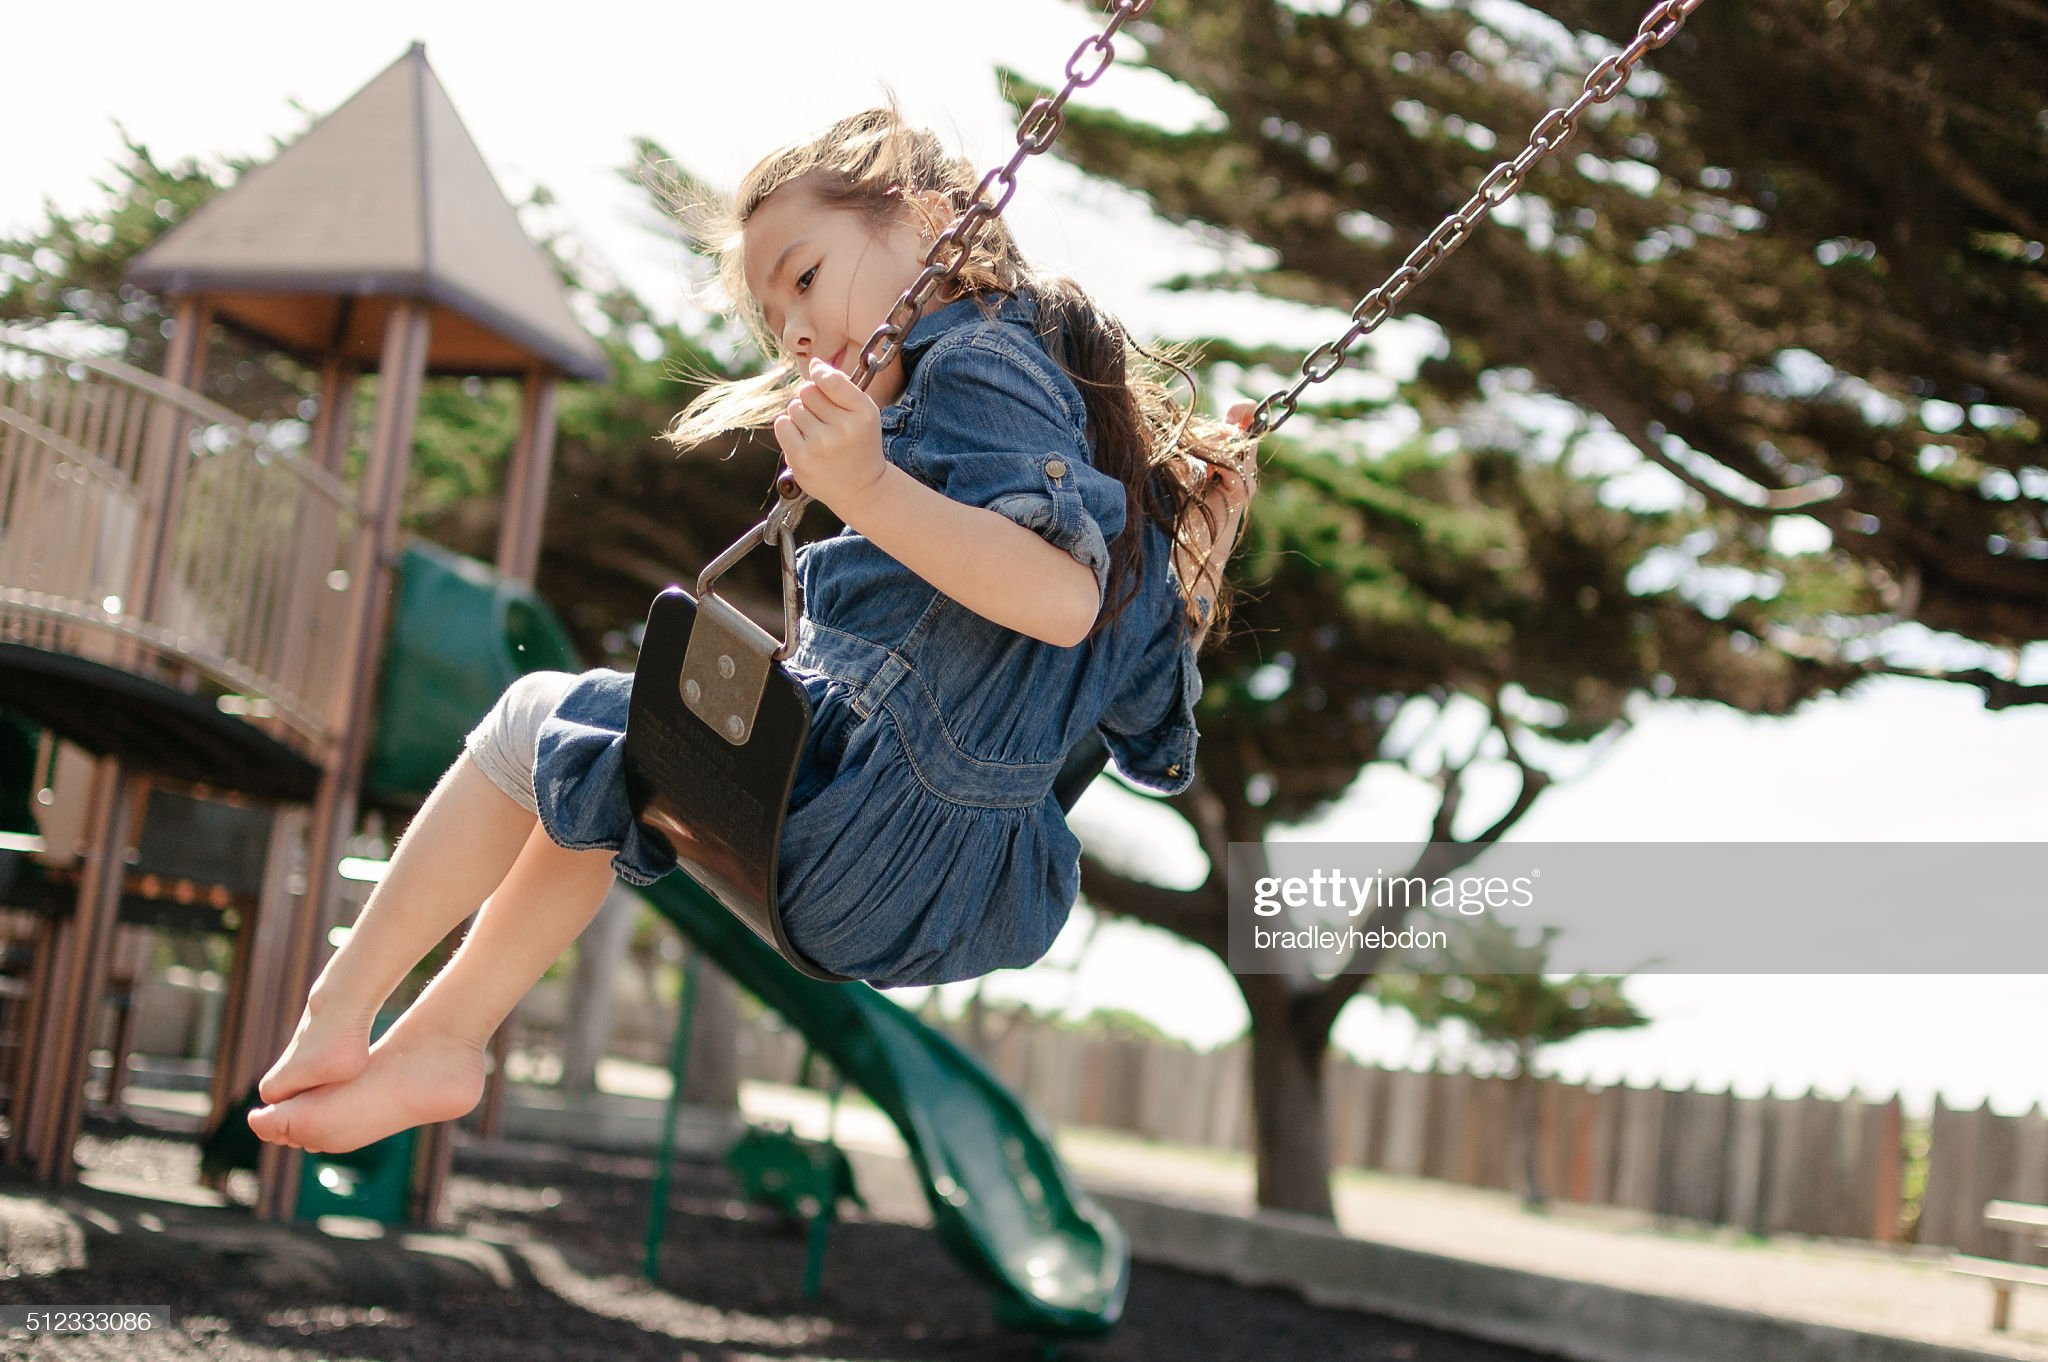 https://media.gettyimages.com/photos/little-girl-swinging-on-a-swing-in-a-playground-picture-id512333086?s=2048x2048